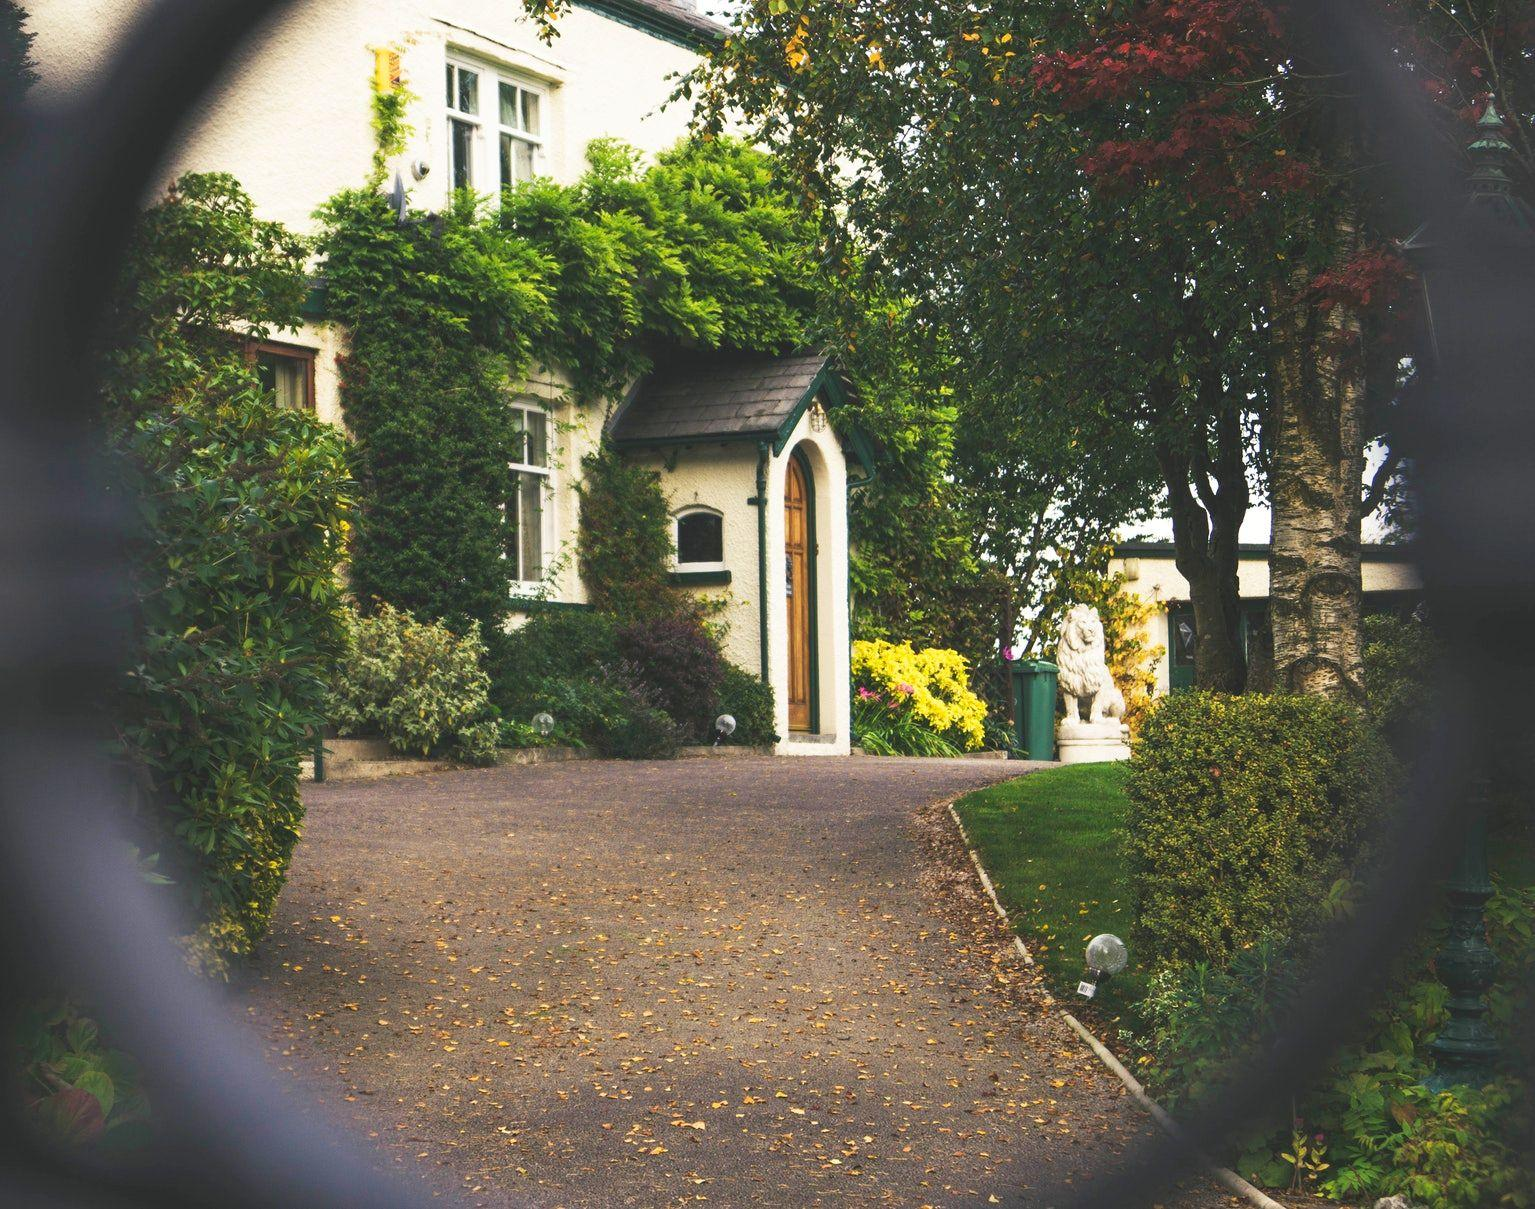 Landscaping Can Add Value To Your Property